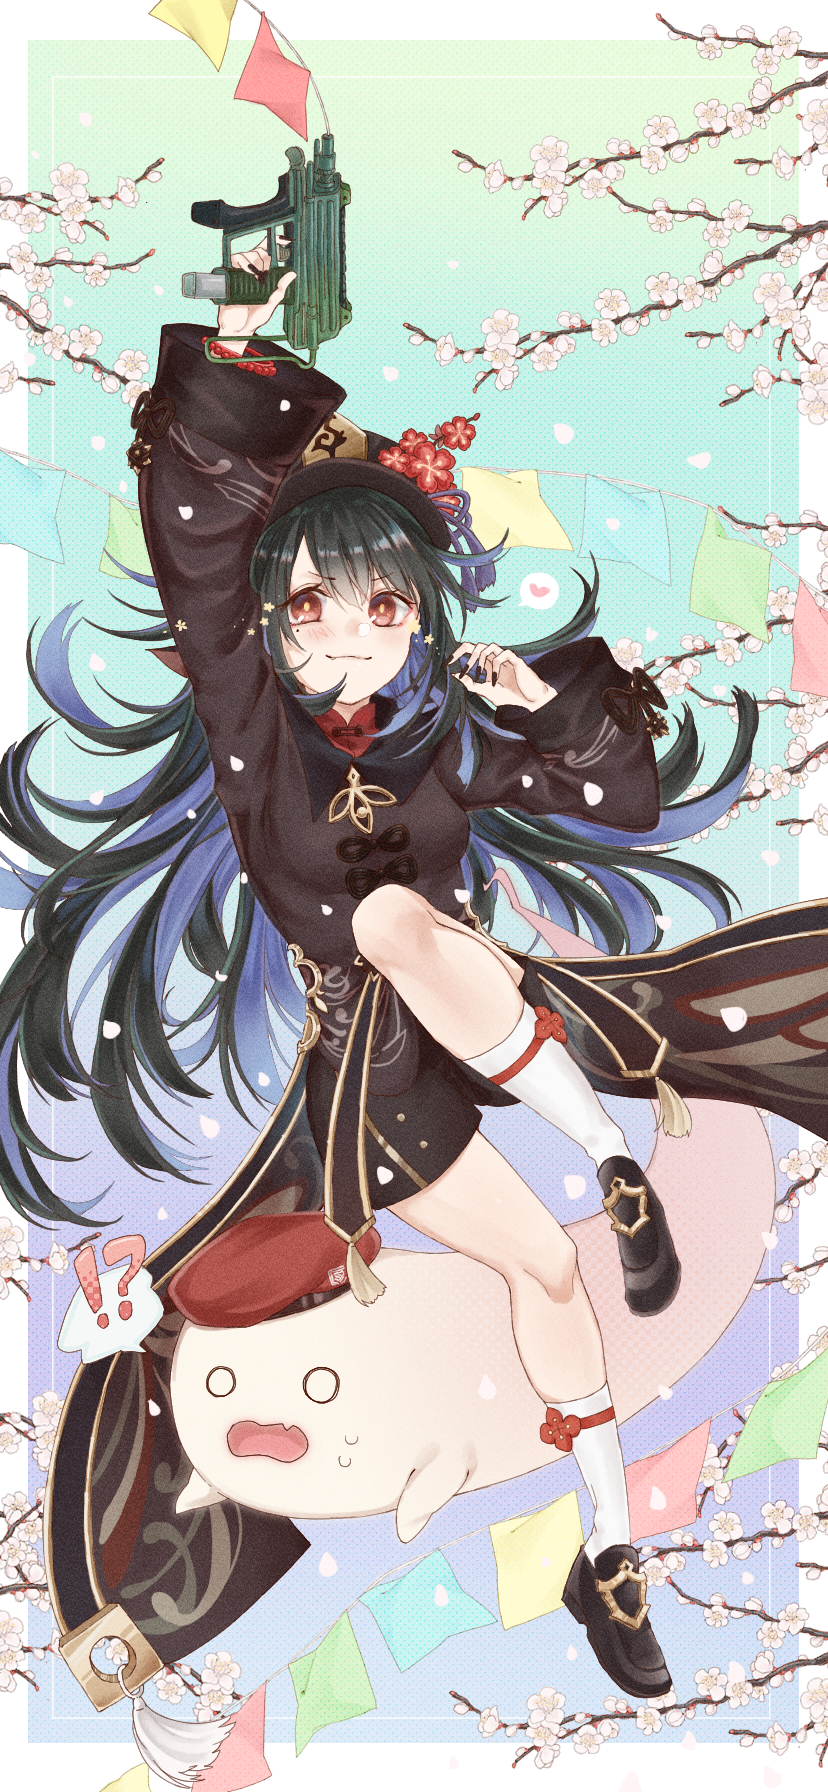 !? 1girl bangs beret black_footwear black_hair black_nails breasts brown_headwear c-ms_(girls_frontline) cbj-ms cherry_blossoms chinese_clothes closed_mouth commentary_request cosplay crossover full_body genshin_impact ghost girls_frontline gun hair_between_eyes hat heart highres holding holding_gun holding_weapon hu_tao_(genshin_impact) hu_tao_(genshin_impact)_(cosplay) long_hair long_sleeves looking_at_viewer mole mole_under_eye open_mouth rabb_horn red_eyes red_headwear shoes smile solo speech_bubble surprised weapon white_legwear